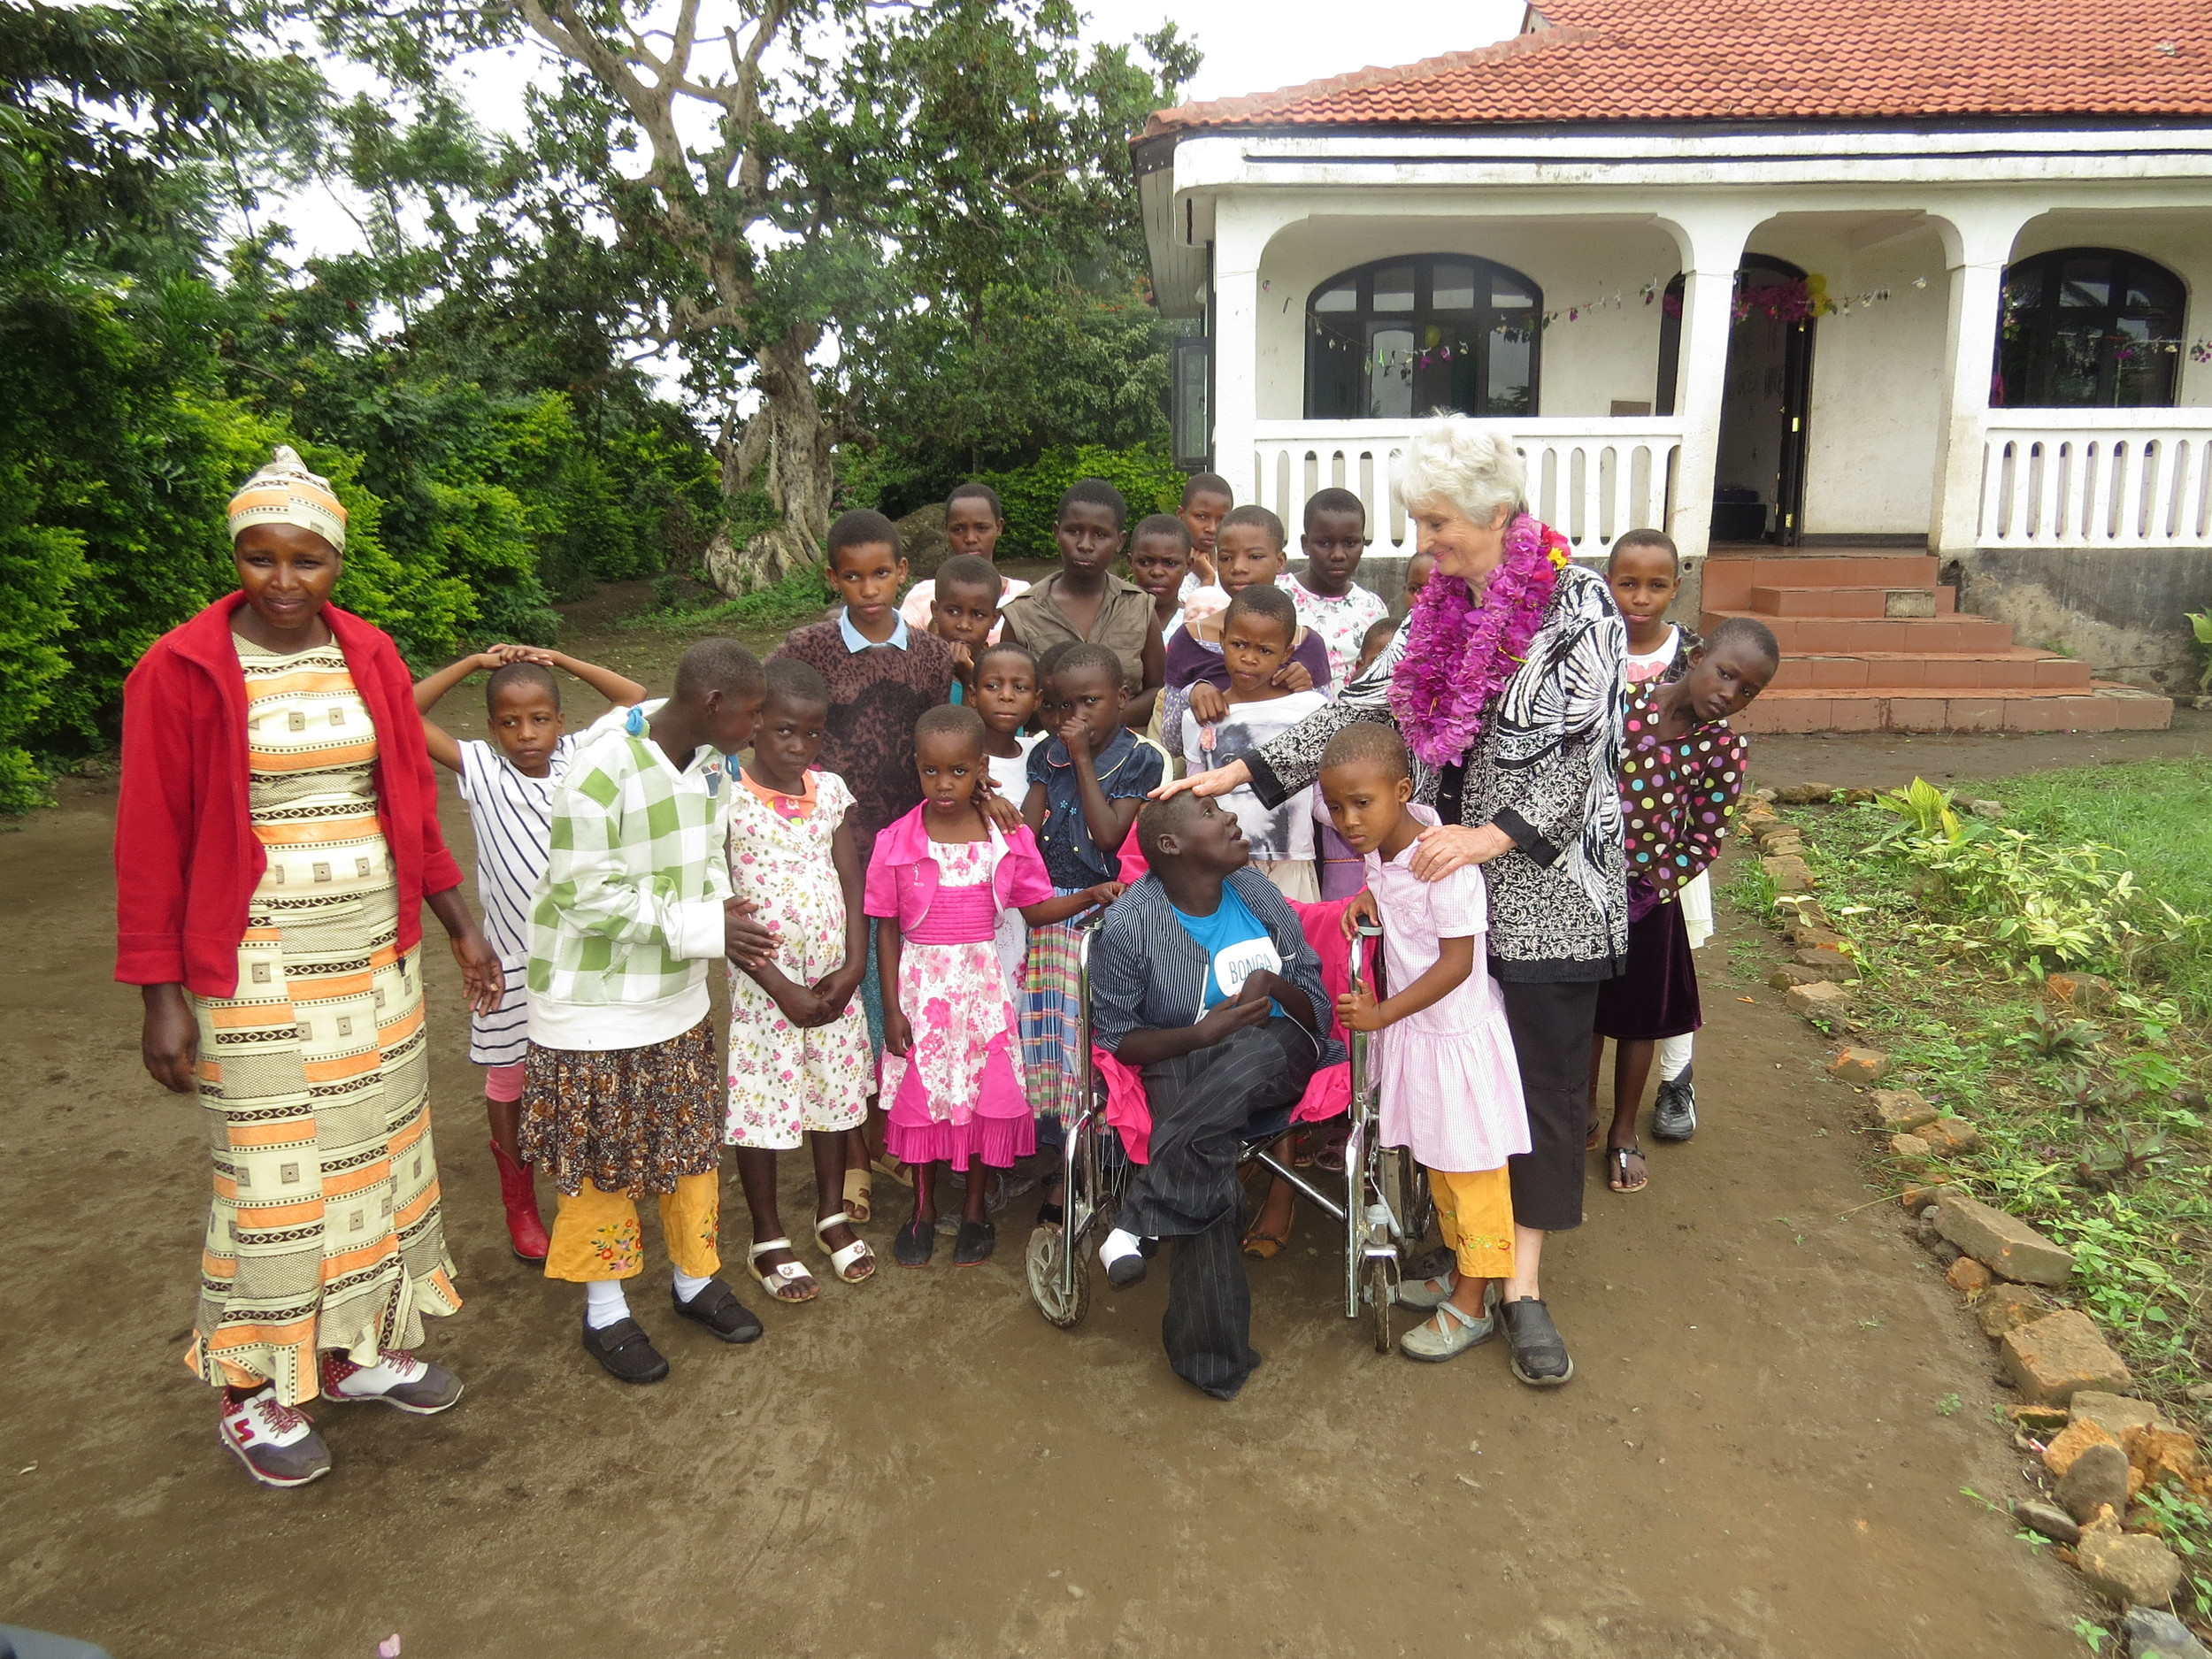 Neema in the wheelchair was one of the 38 children that arrived into our care in ONE day.